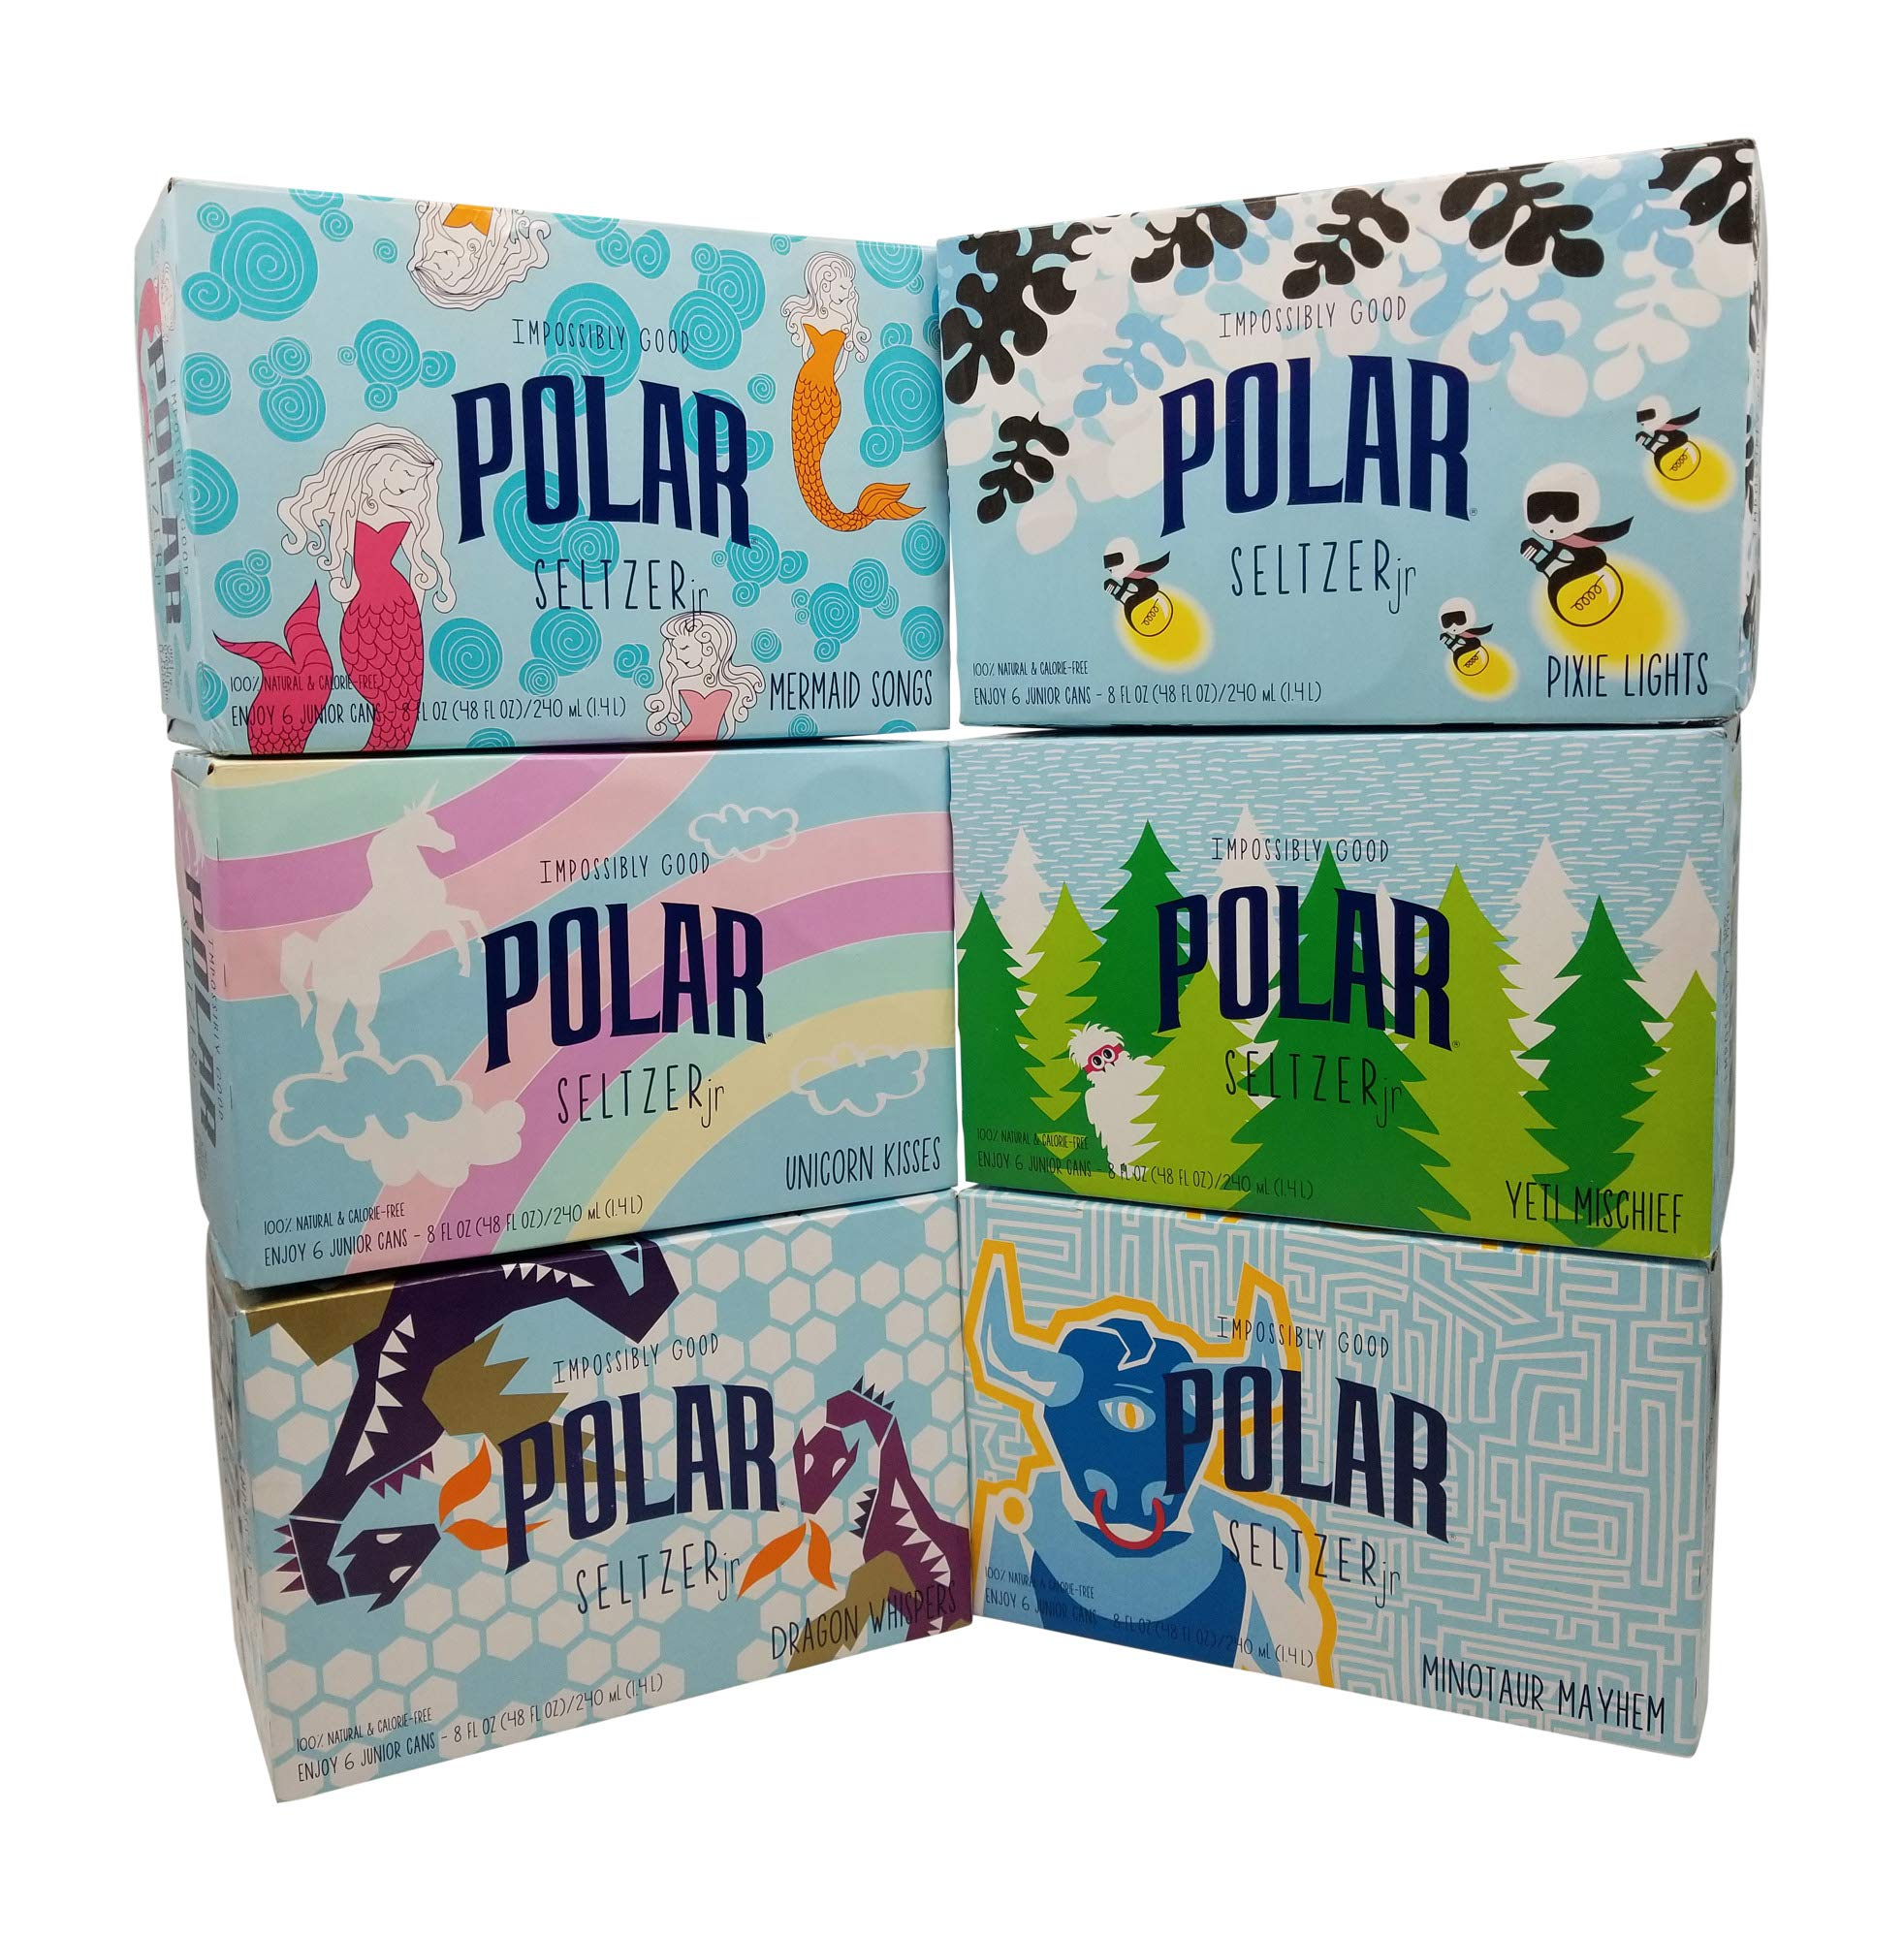 POLAR 100% Natural Seltzer Jr - 36 ct Variety Pack - The Impossibly Good Collection (Unicorn Kisses, Yeti Mischief, Mermaid Songs, Dragon Whispers, Minotaur Mayhem, Pixie Lights) by Generic